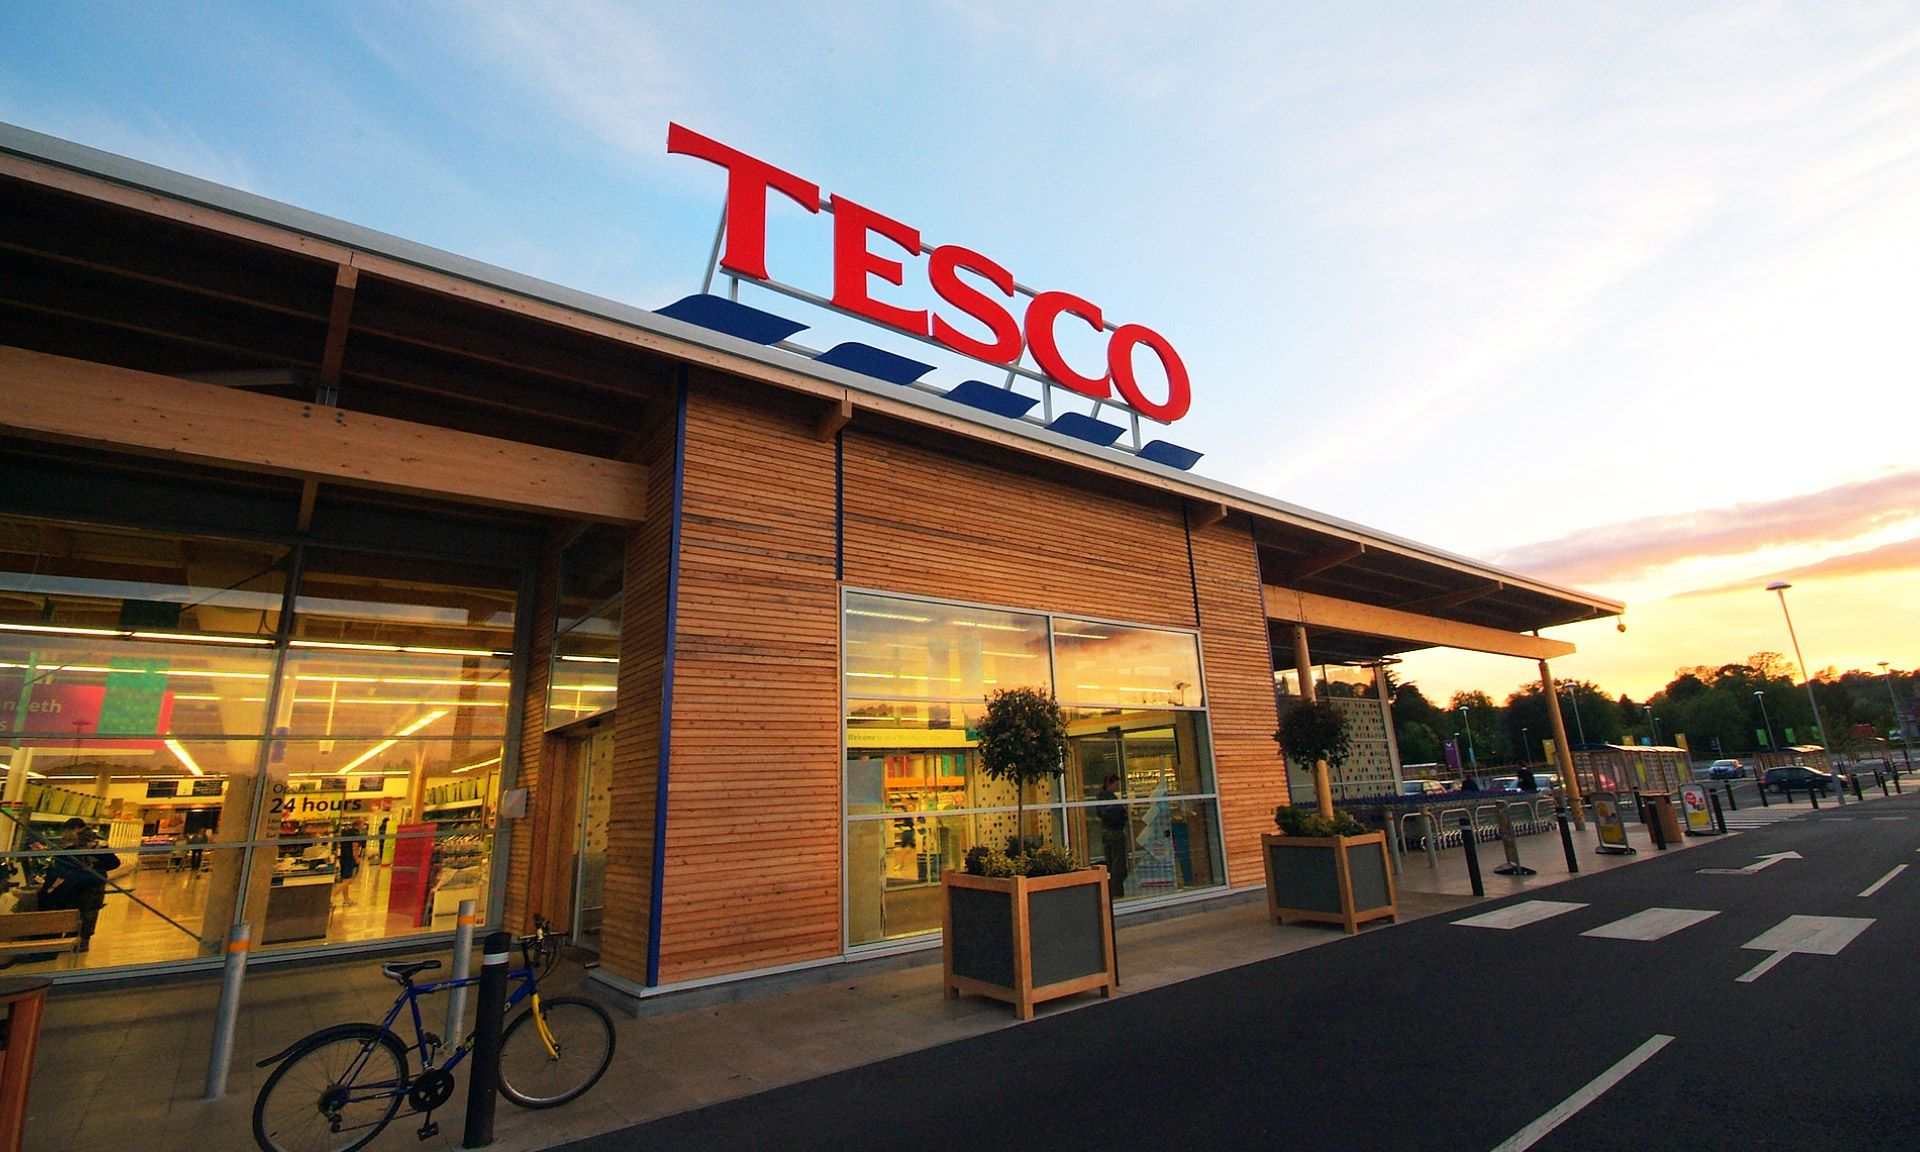 Tesco s best supermarket store design retail interiors for Retail interior design agency london